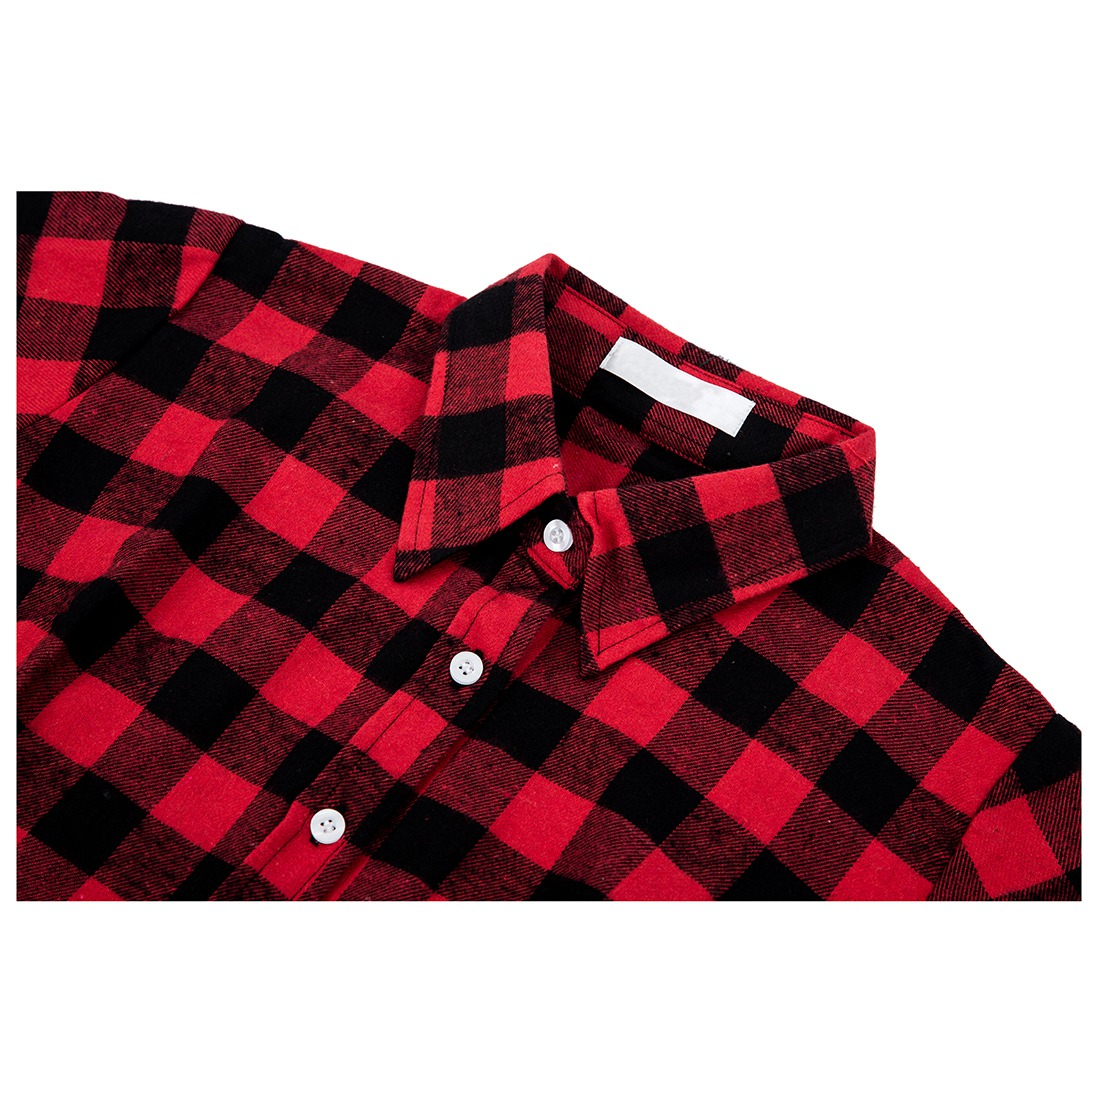 Black, Red, Yellow, White, Green, & Blue Plaid Flannel FabricThis item is only sold by the boltNo samples are available15 YARD BOLT Black, Red, Yellow, White, Green, & Blue Plaid Flannel FabricThis item is only sold by the boltNo samples are available15 YARD BOLT [ more ].